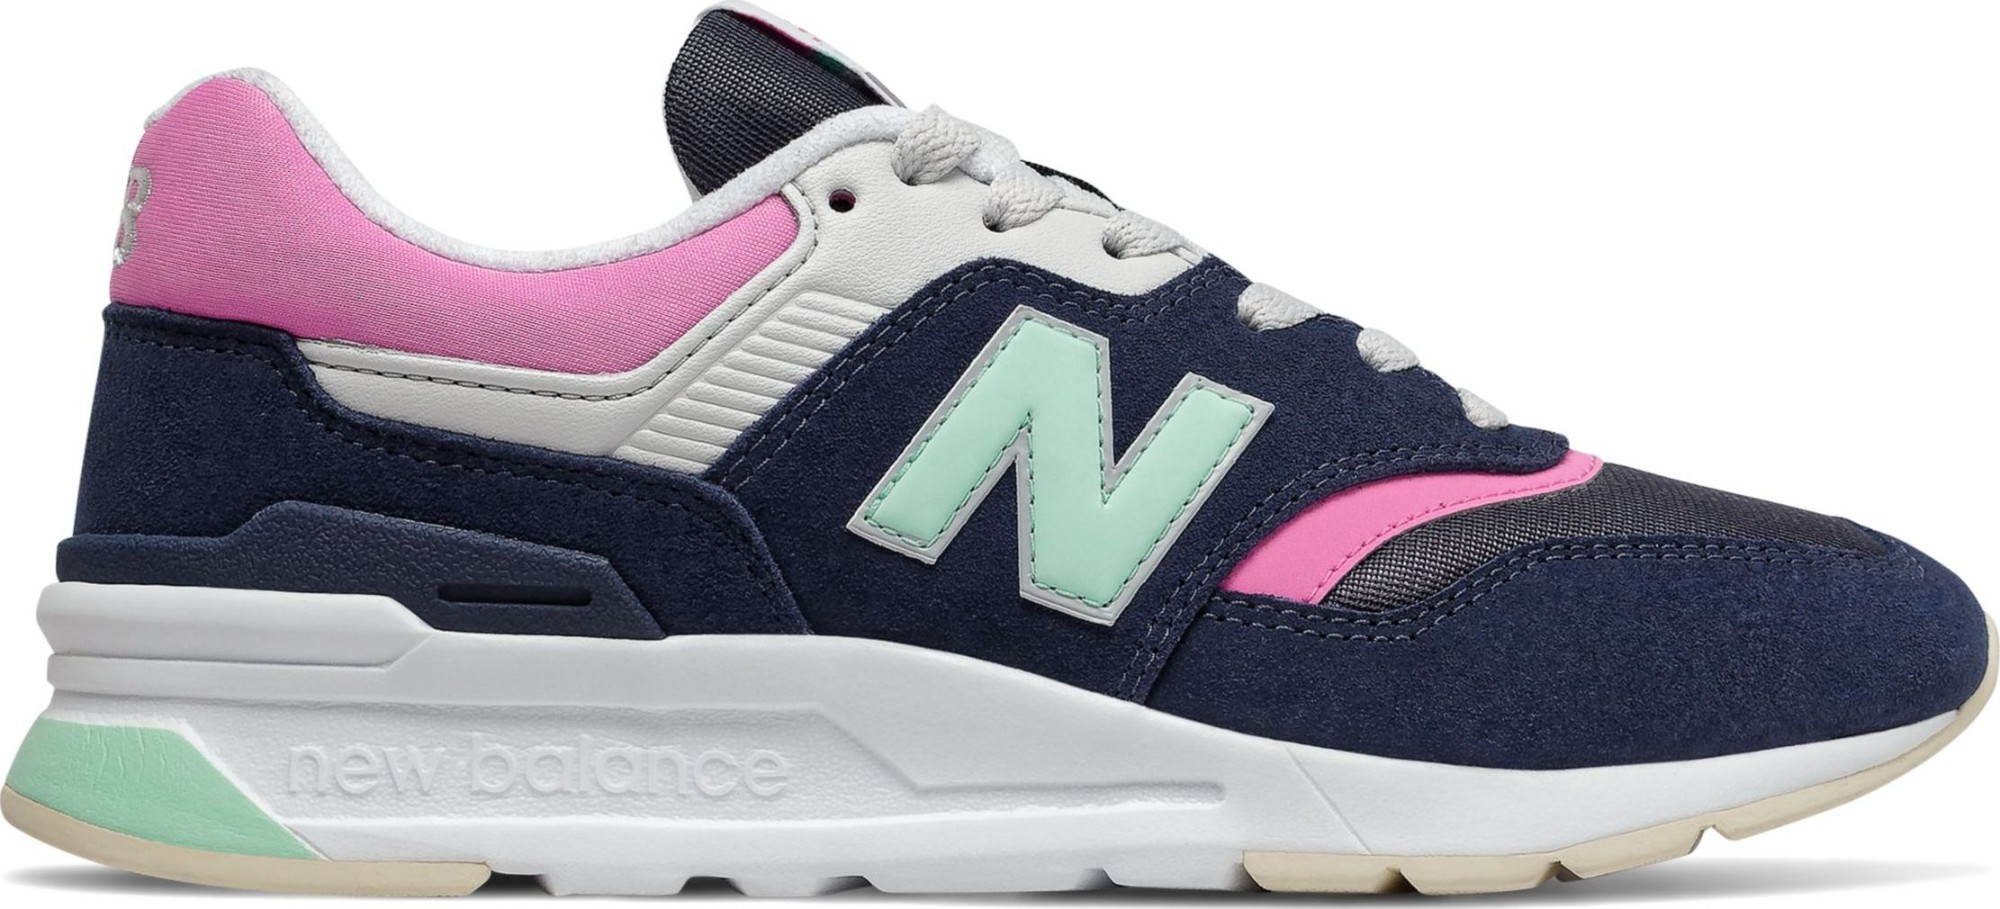 New Balance CW997 Navy/Pink 37